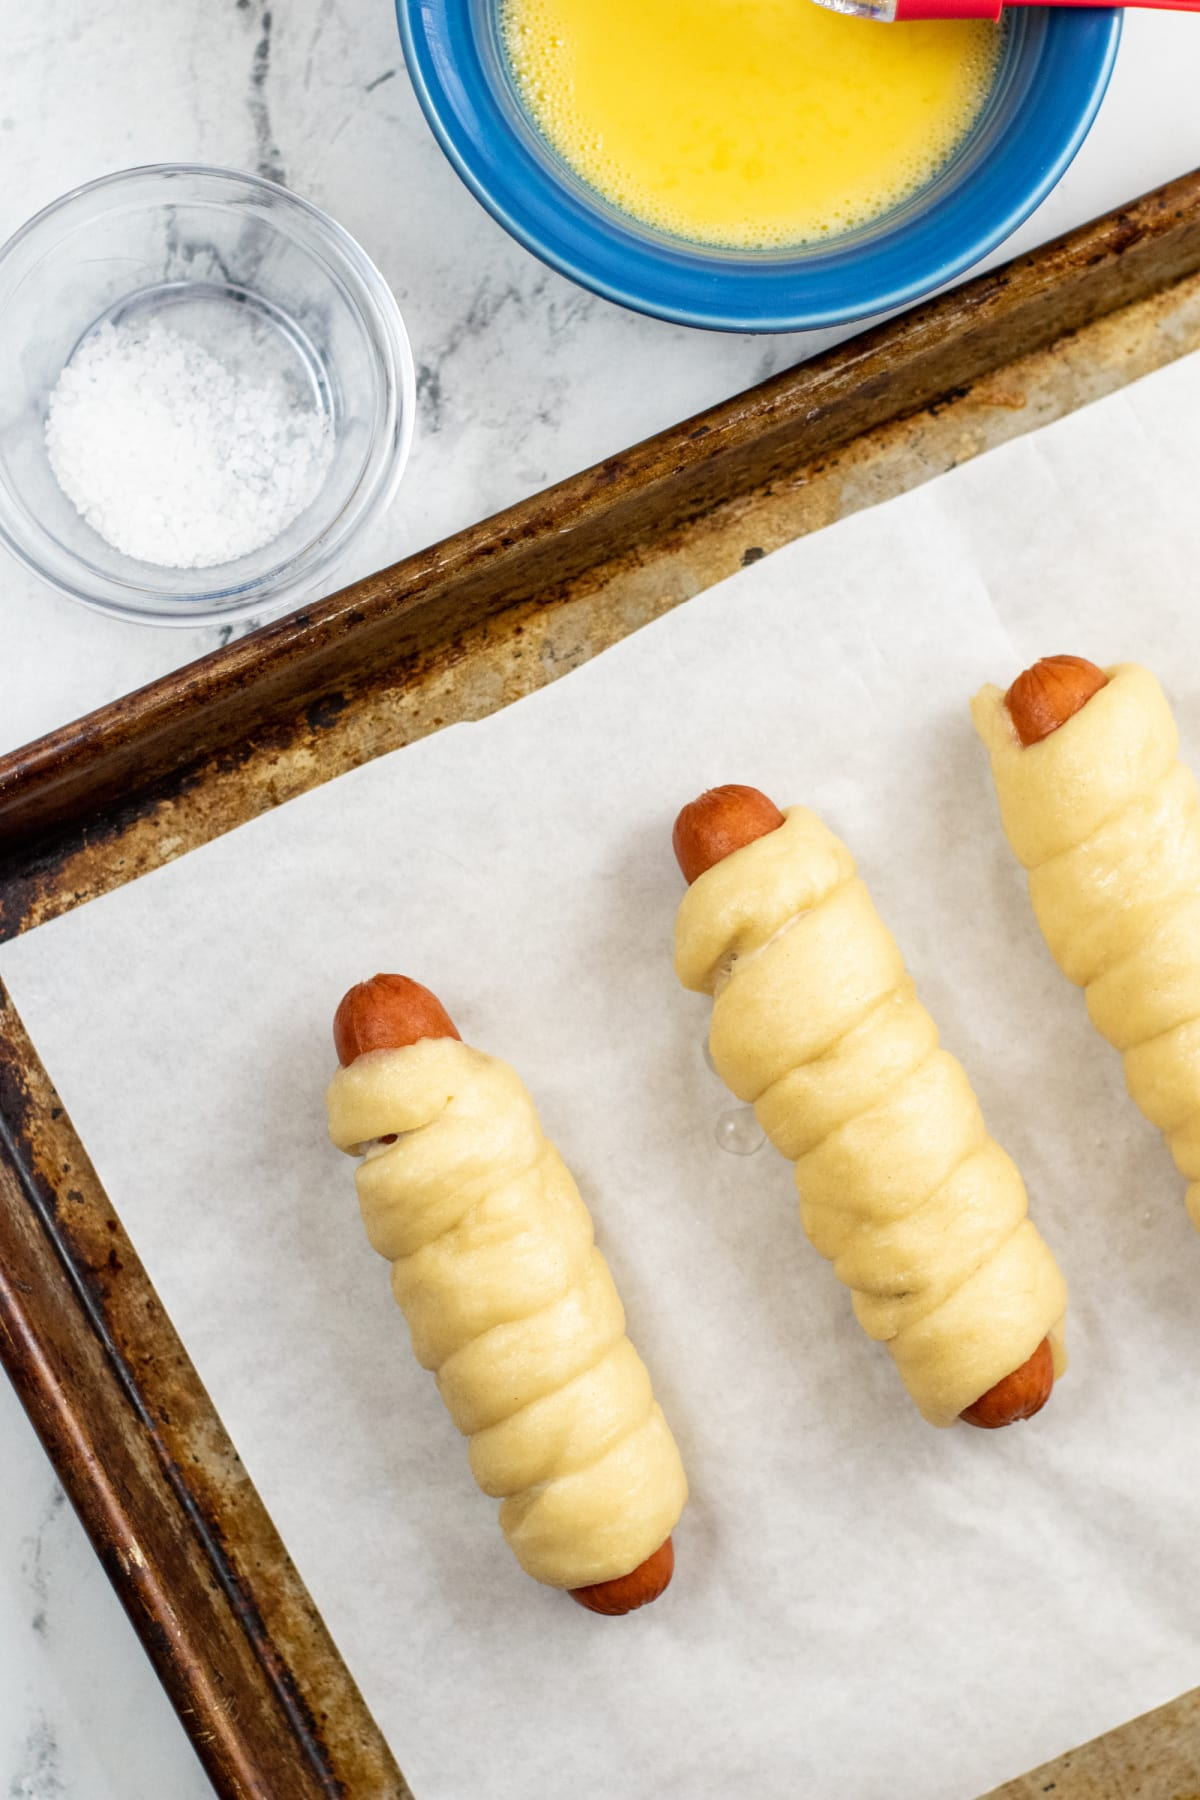 Hot dogs wrapped in pretzel dough